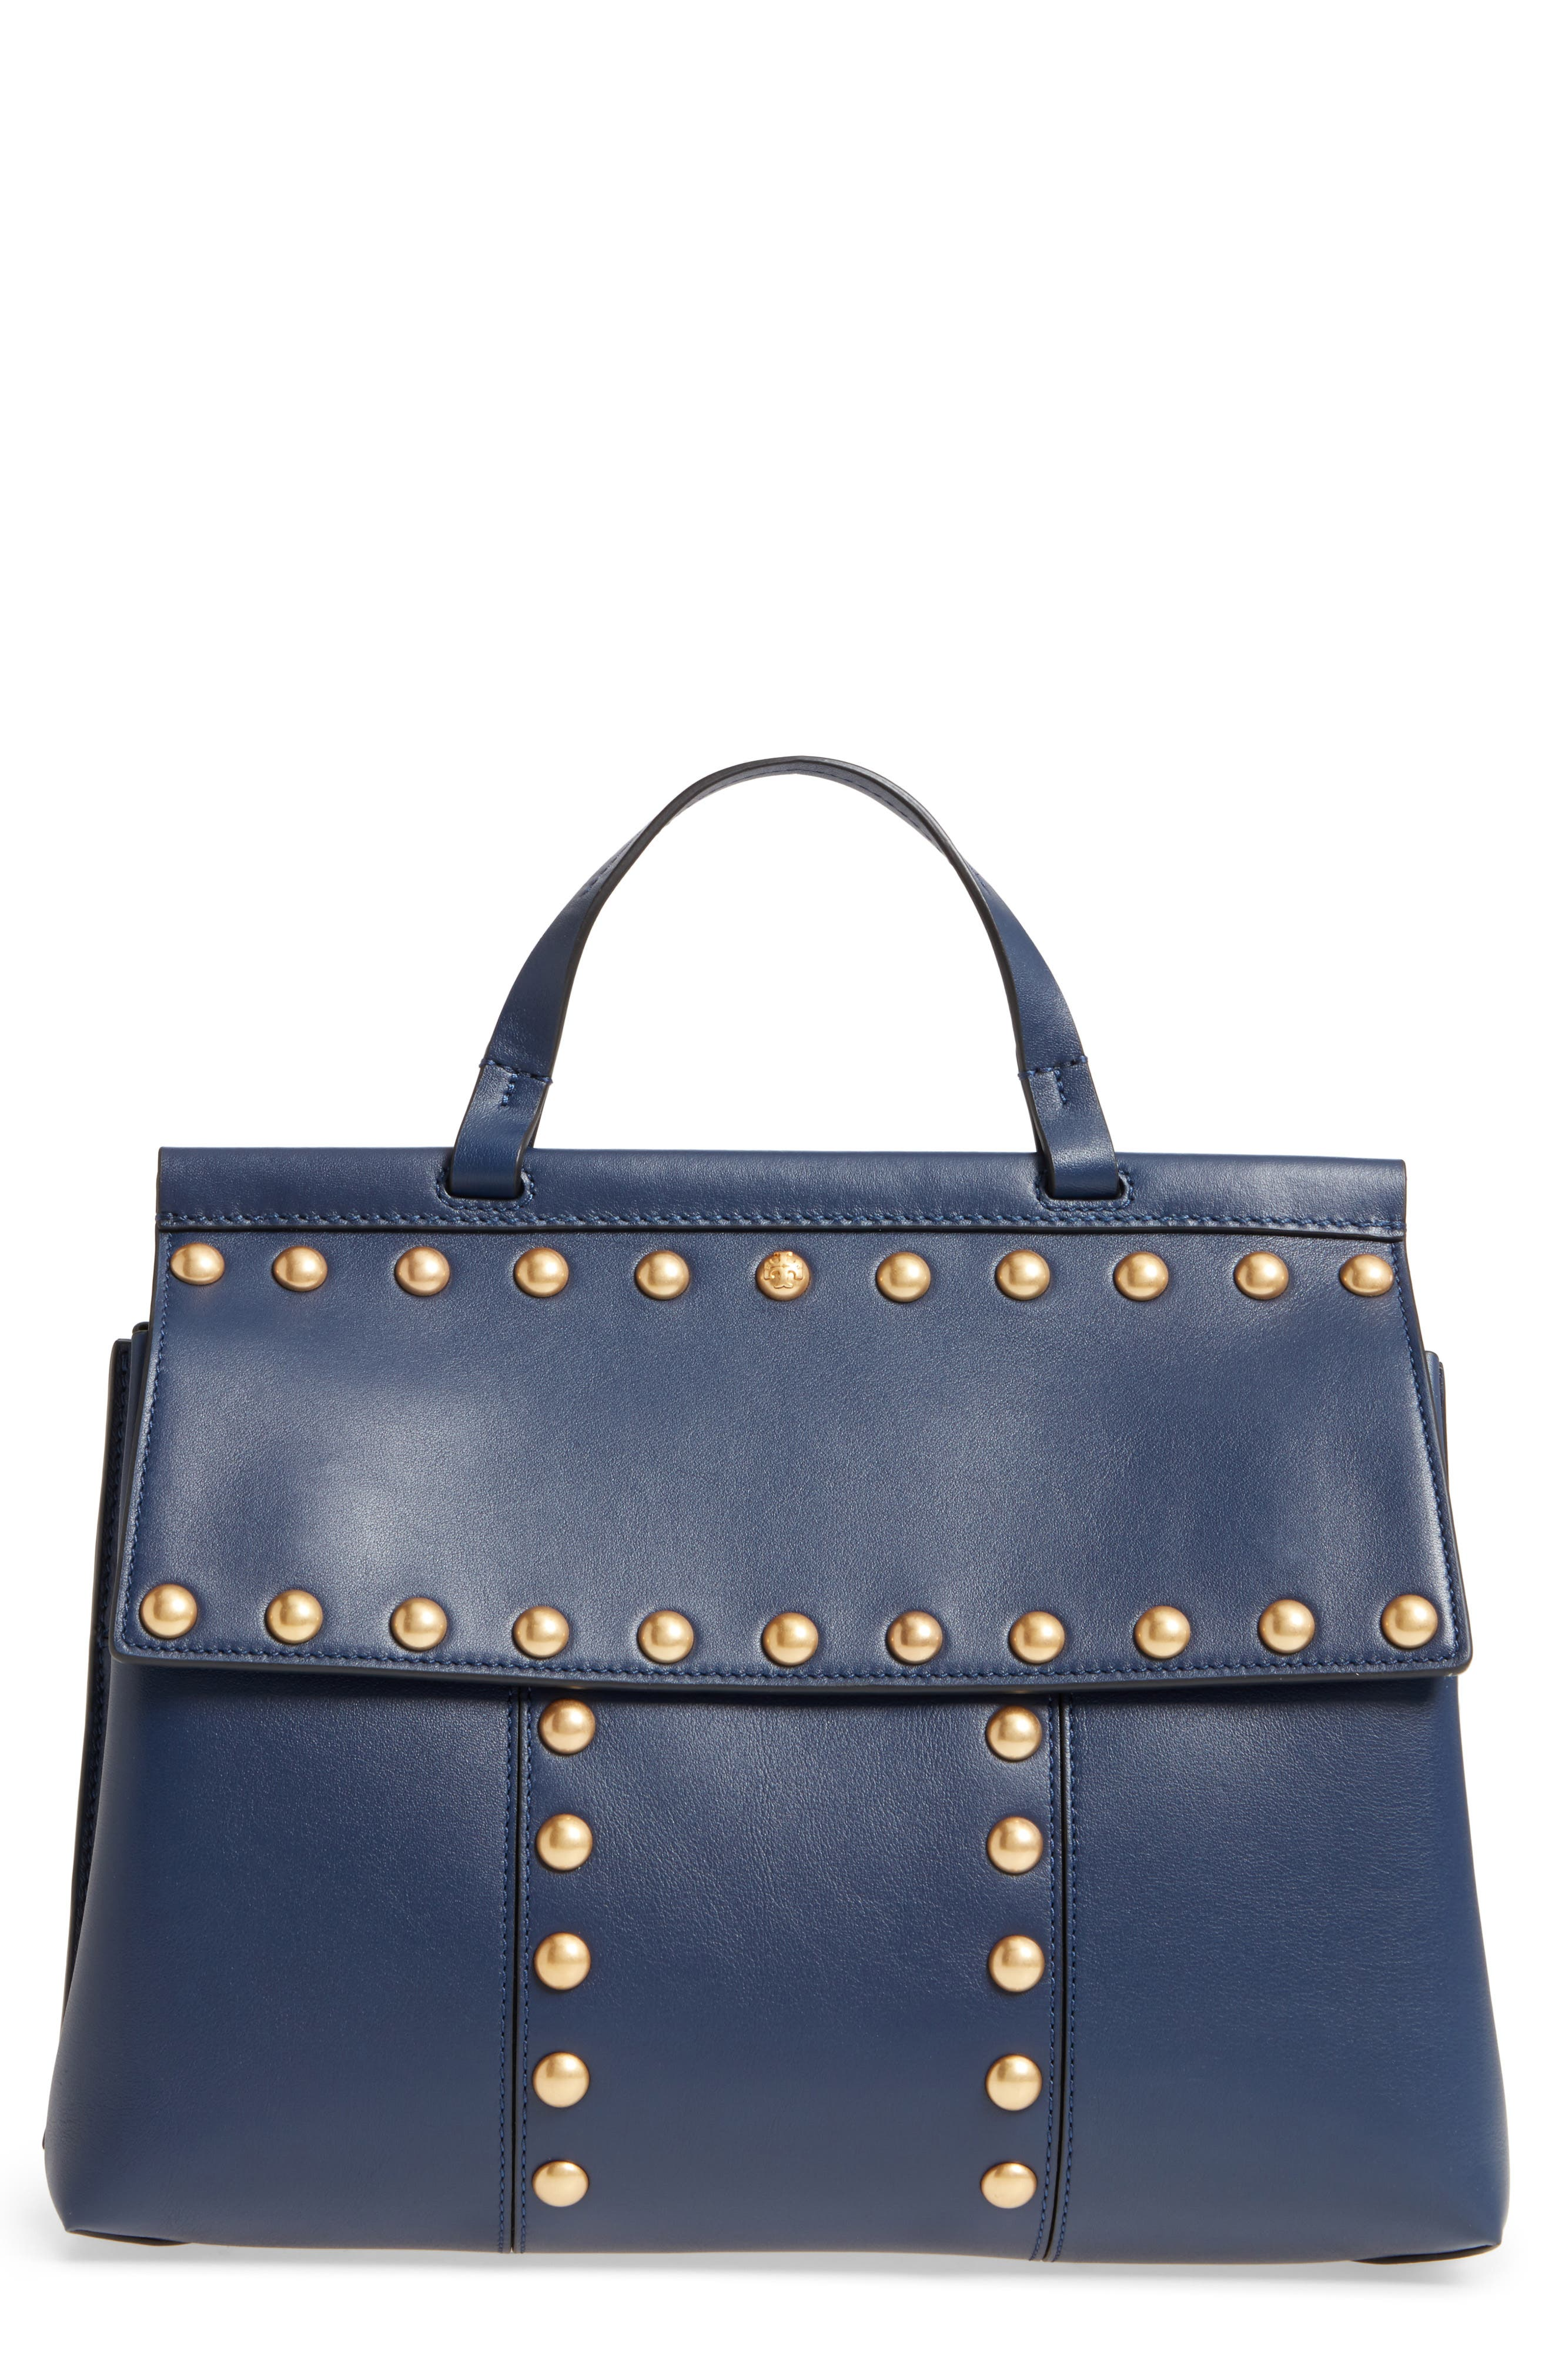 Tory Burch Block-T Studded Leather Top Handle Satchel